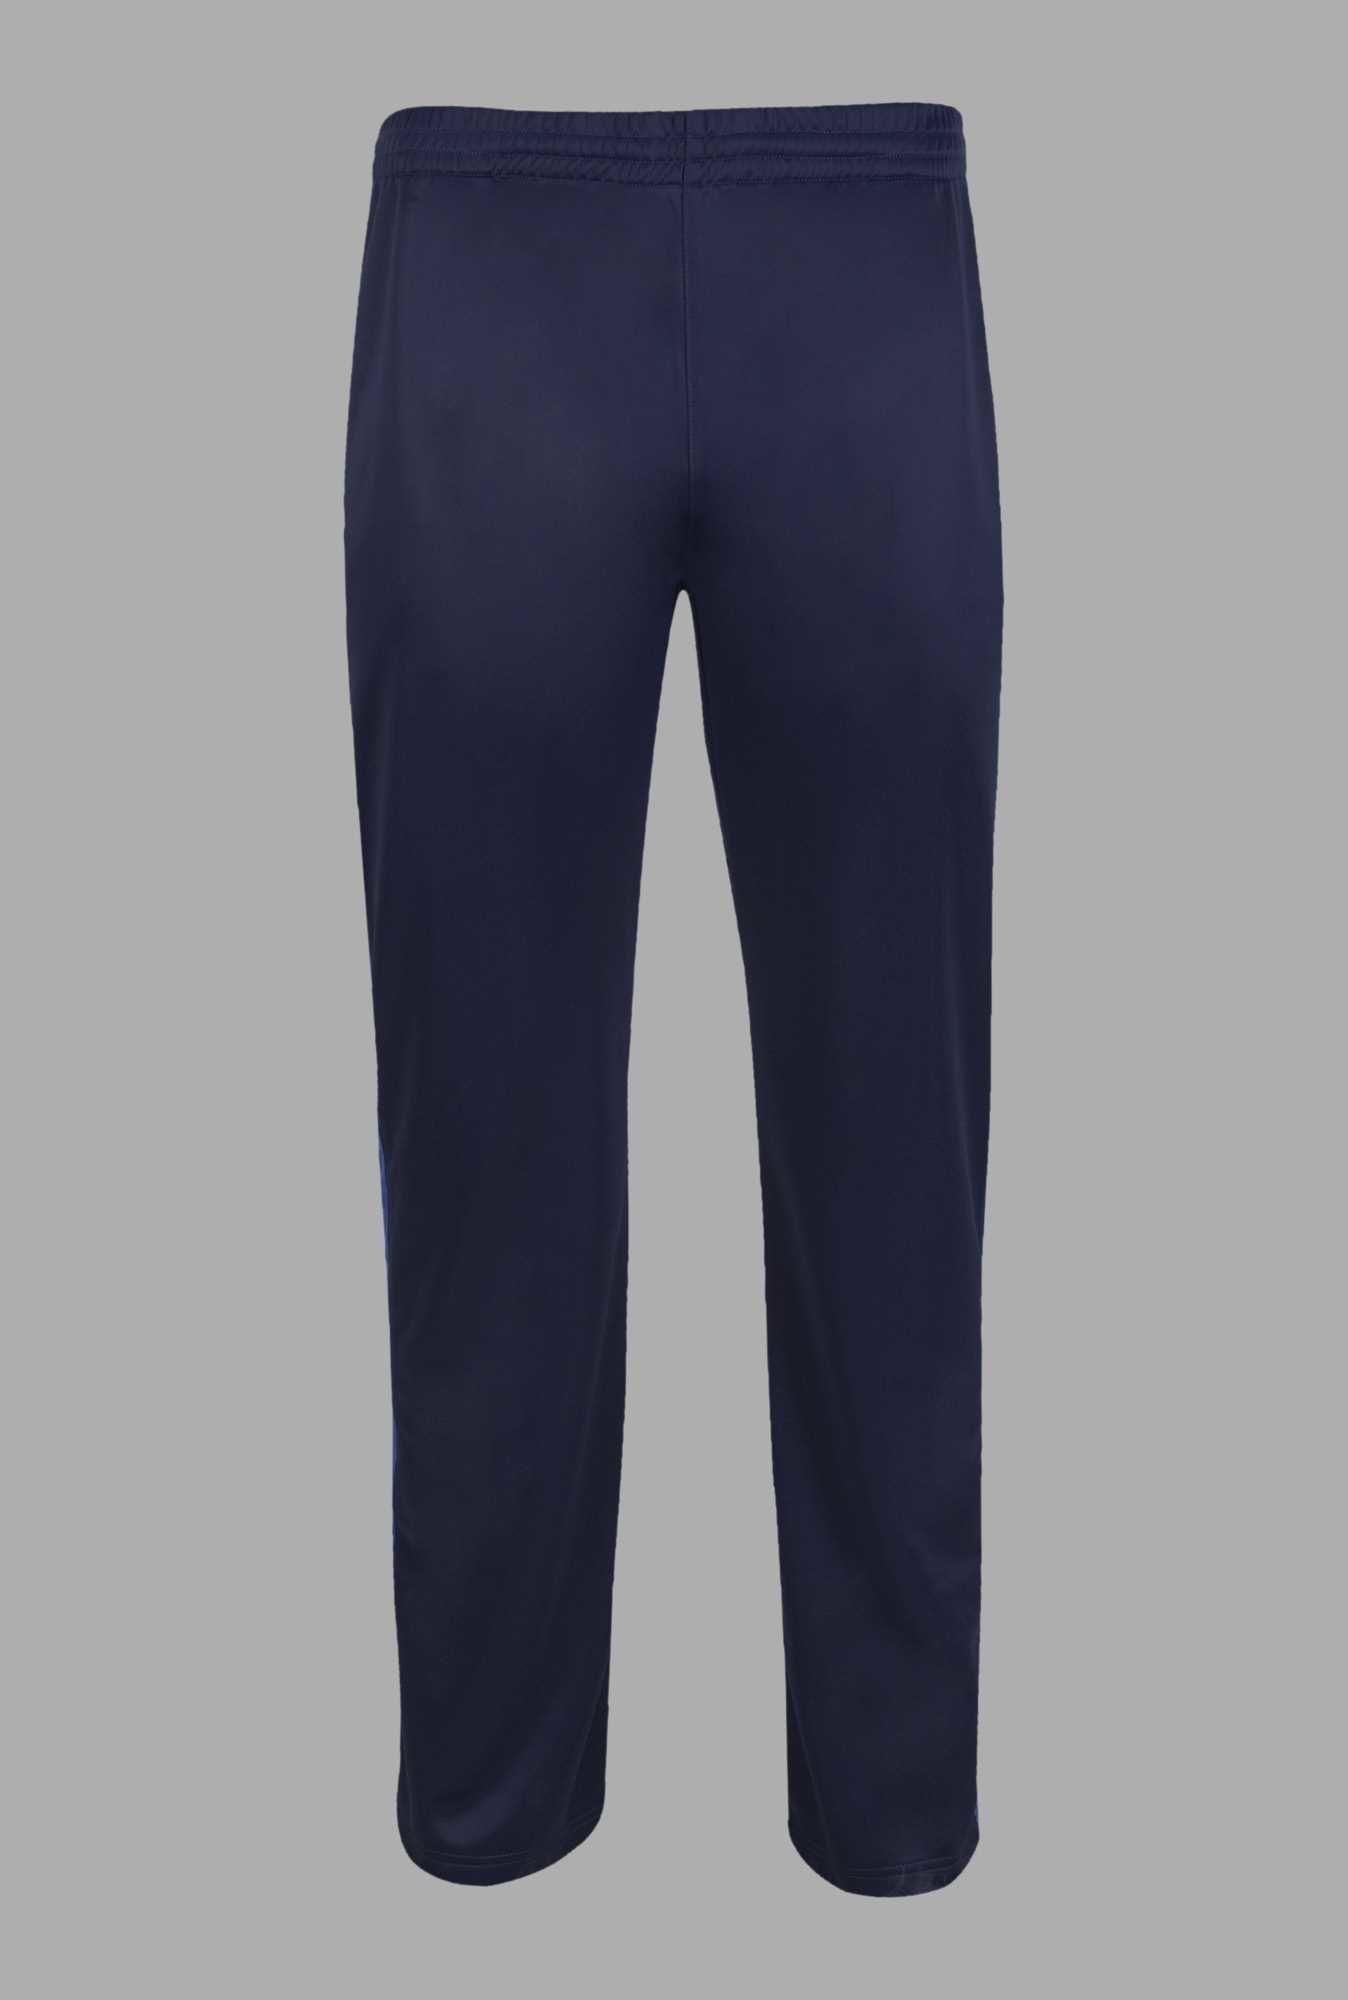 Doone Navy Solid Training Track Pants